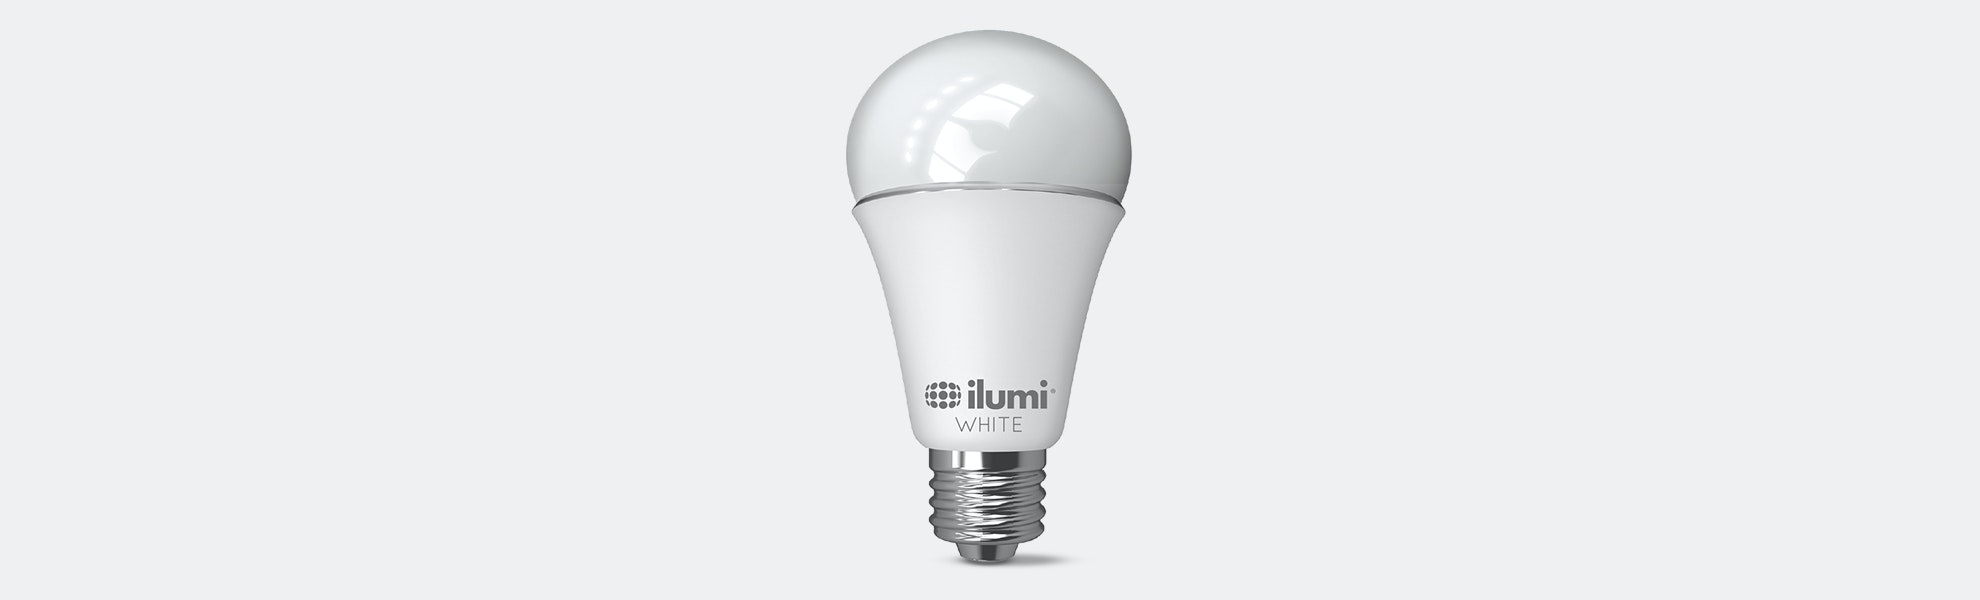 Attractive Ilumi Ajustable White A19 LED Smart Light Bulb